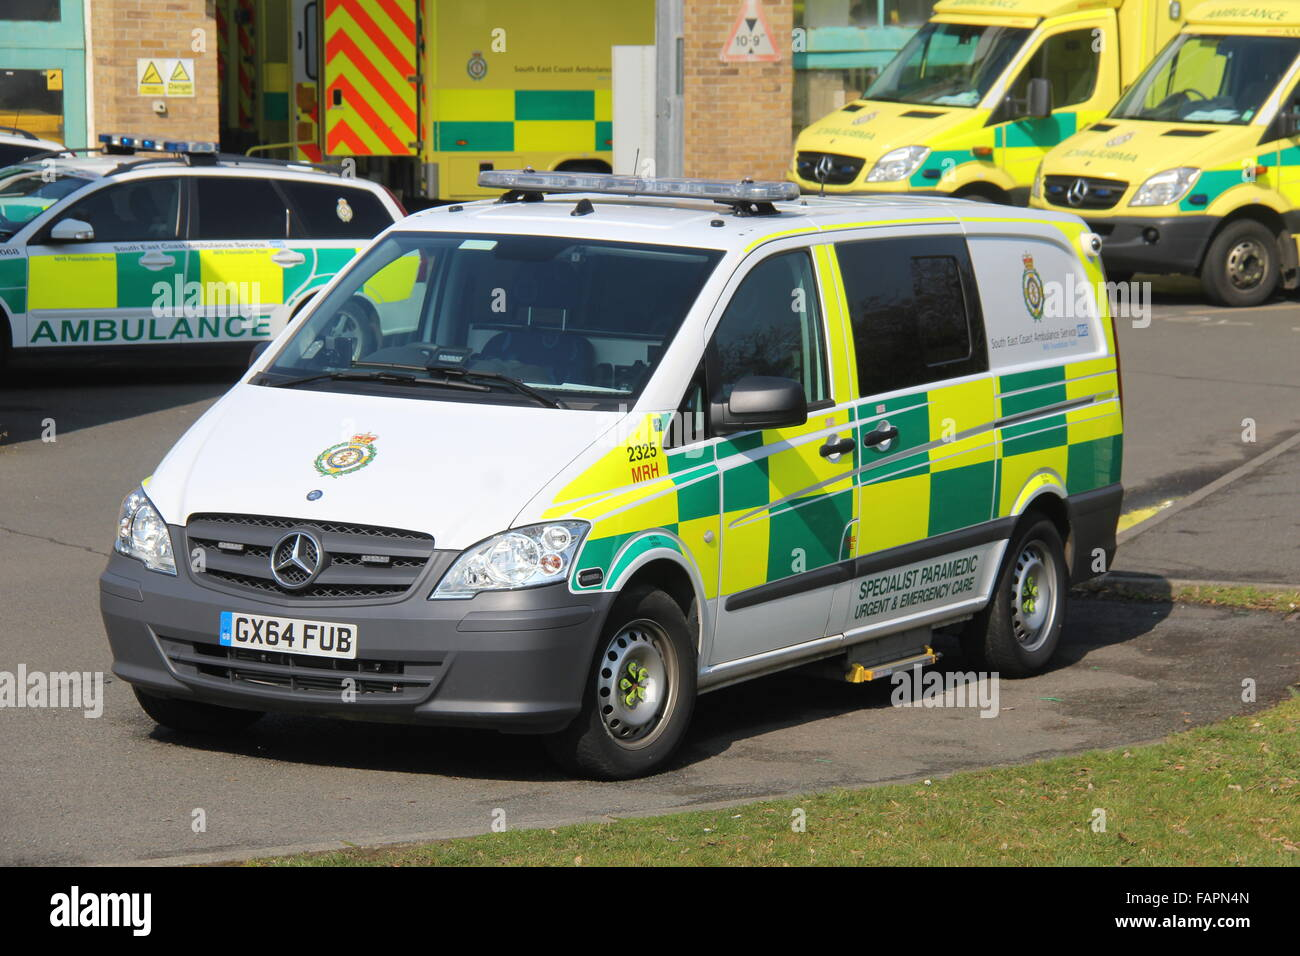 SOUTH EAST COAST AMBULANCE SERVICE SPECIALIST PARAMEDIC VEHICLE - Stock Image